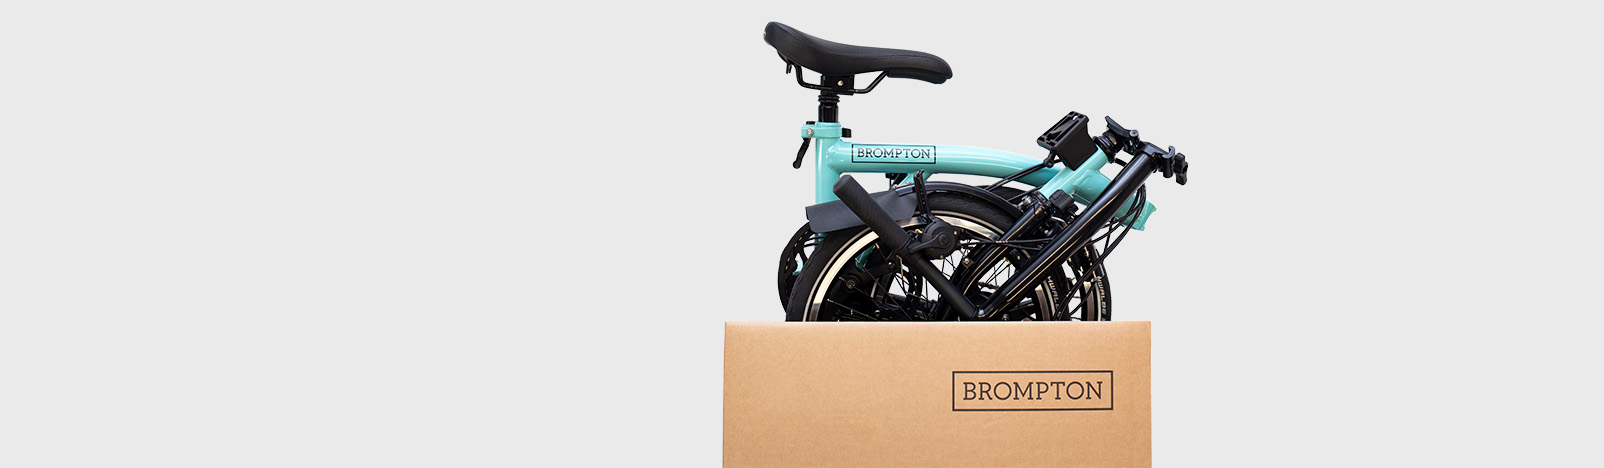 Brompton Bicycle, Quick Start Guide, Brompton Bikes, Free Delivery